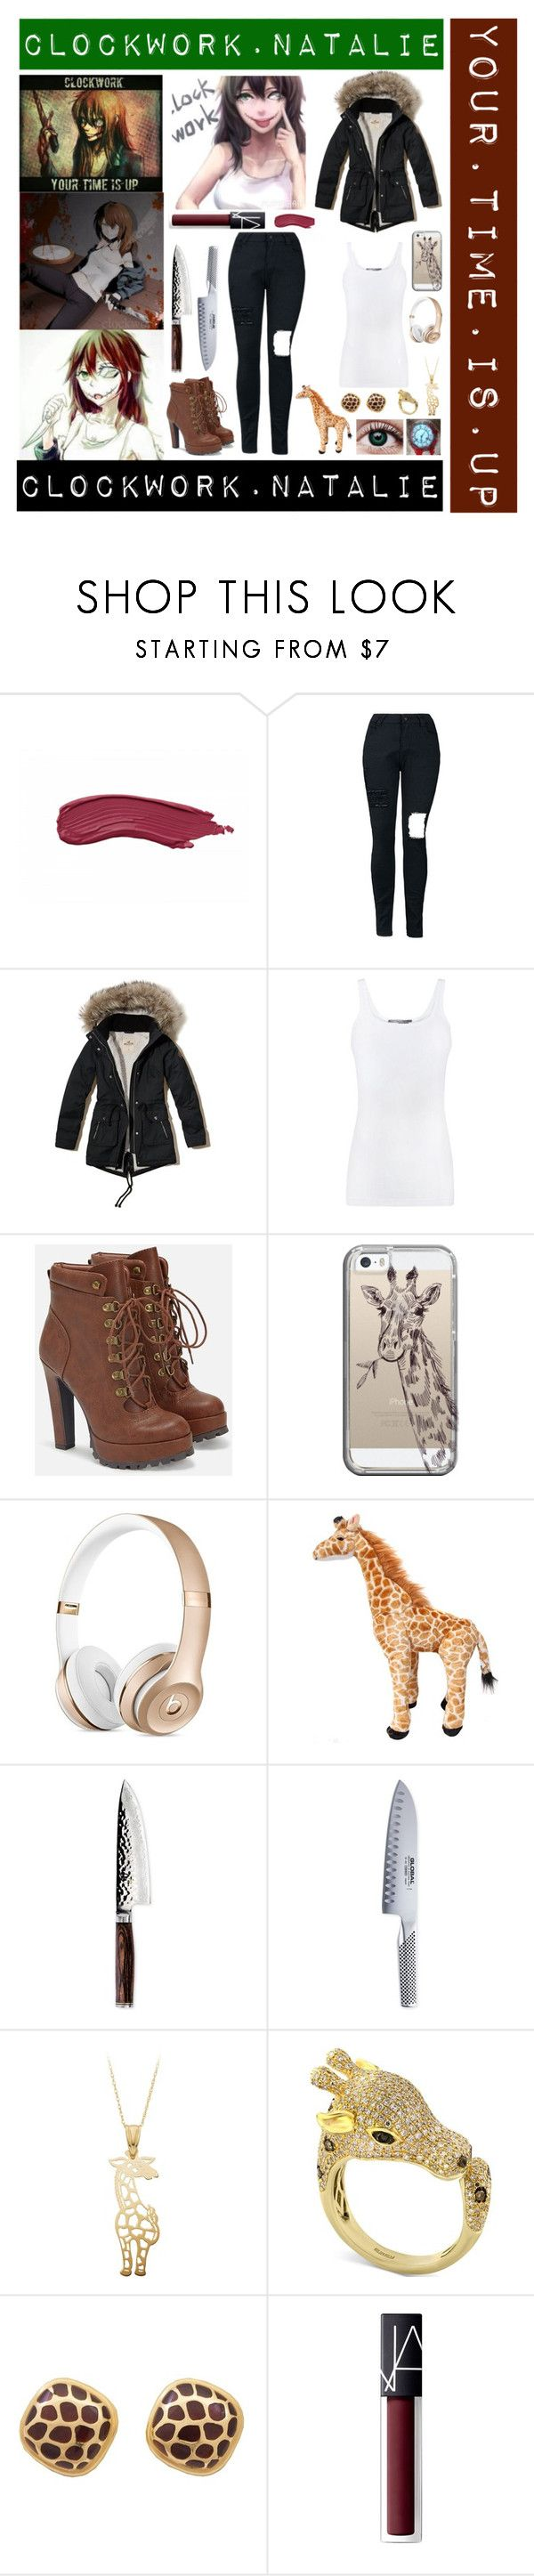 """4201b6a949ca70e257f6232ee60448b5  clockwork creepypasta justfab - """"Clockwork"""" by laughingjacksdaughter ❤ liked on Polyvore featuring Hollister C..."""